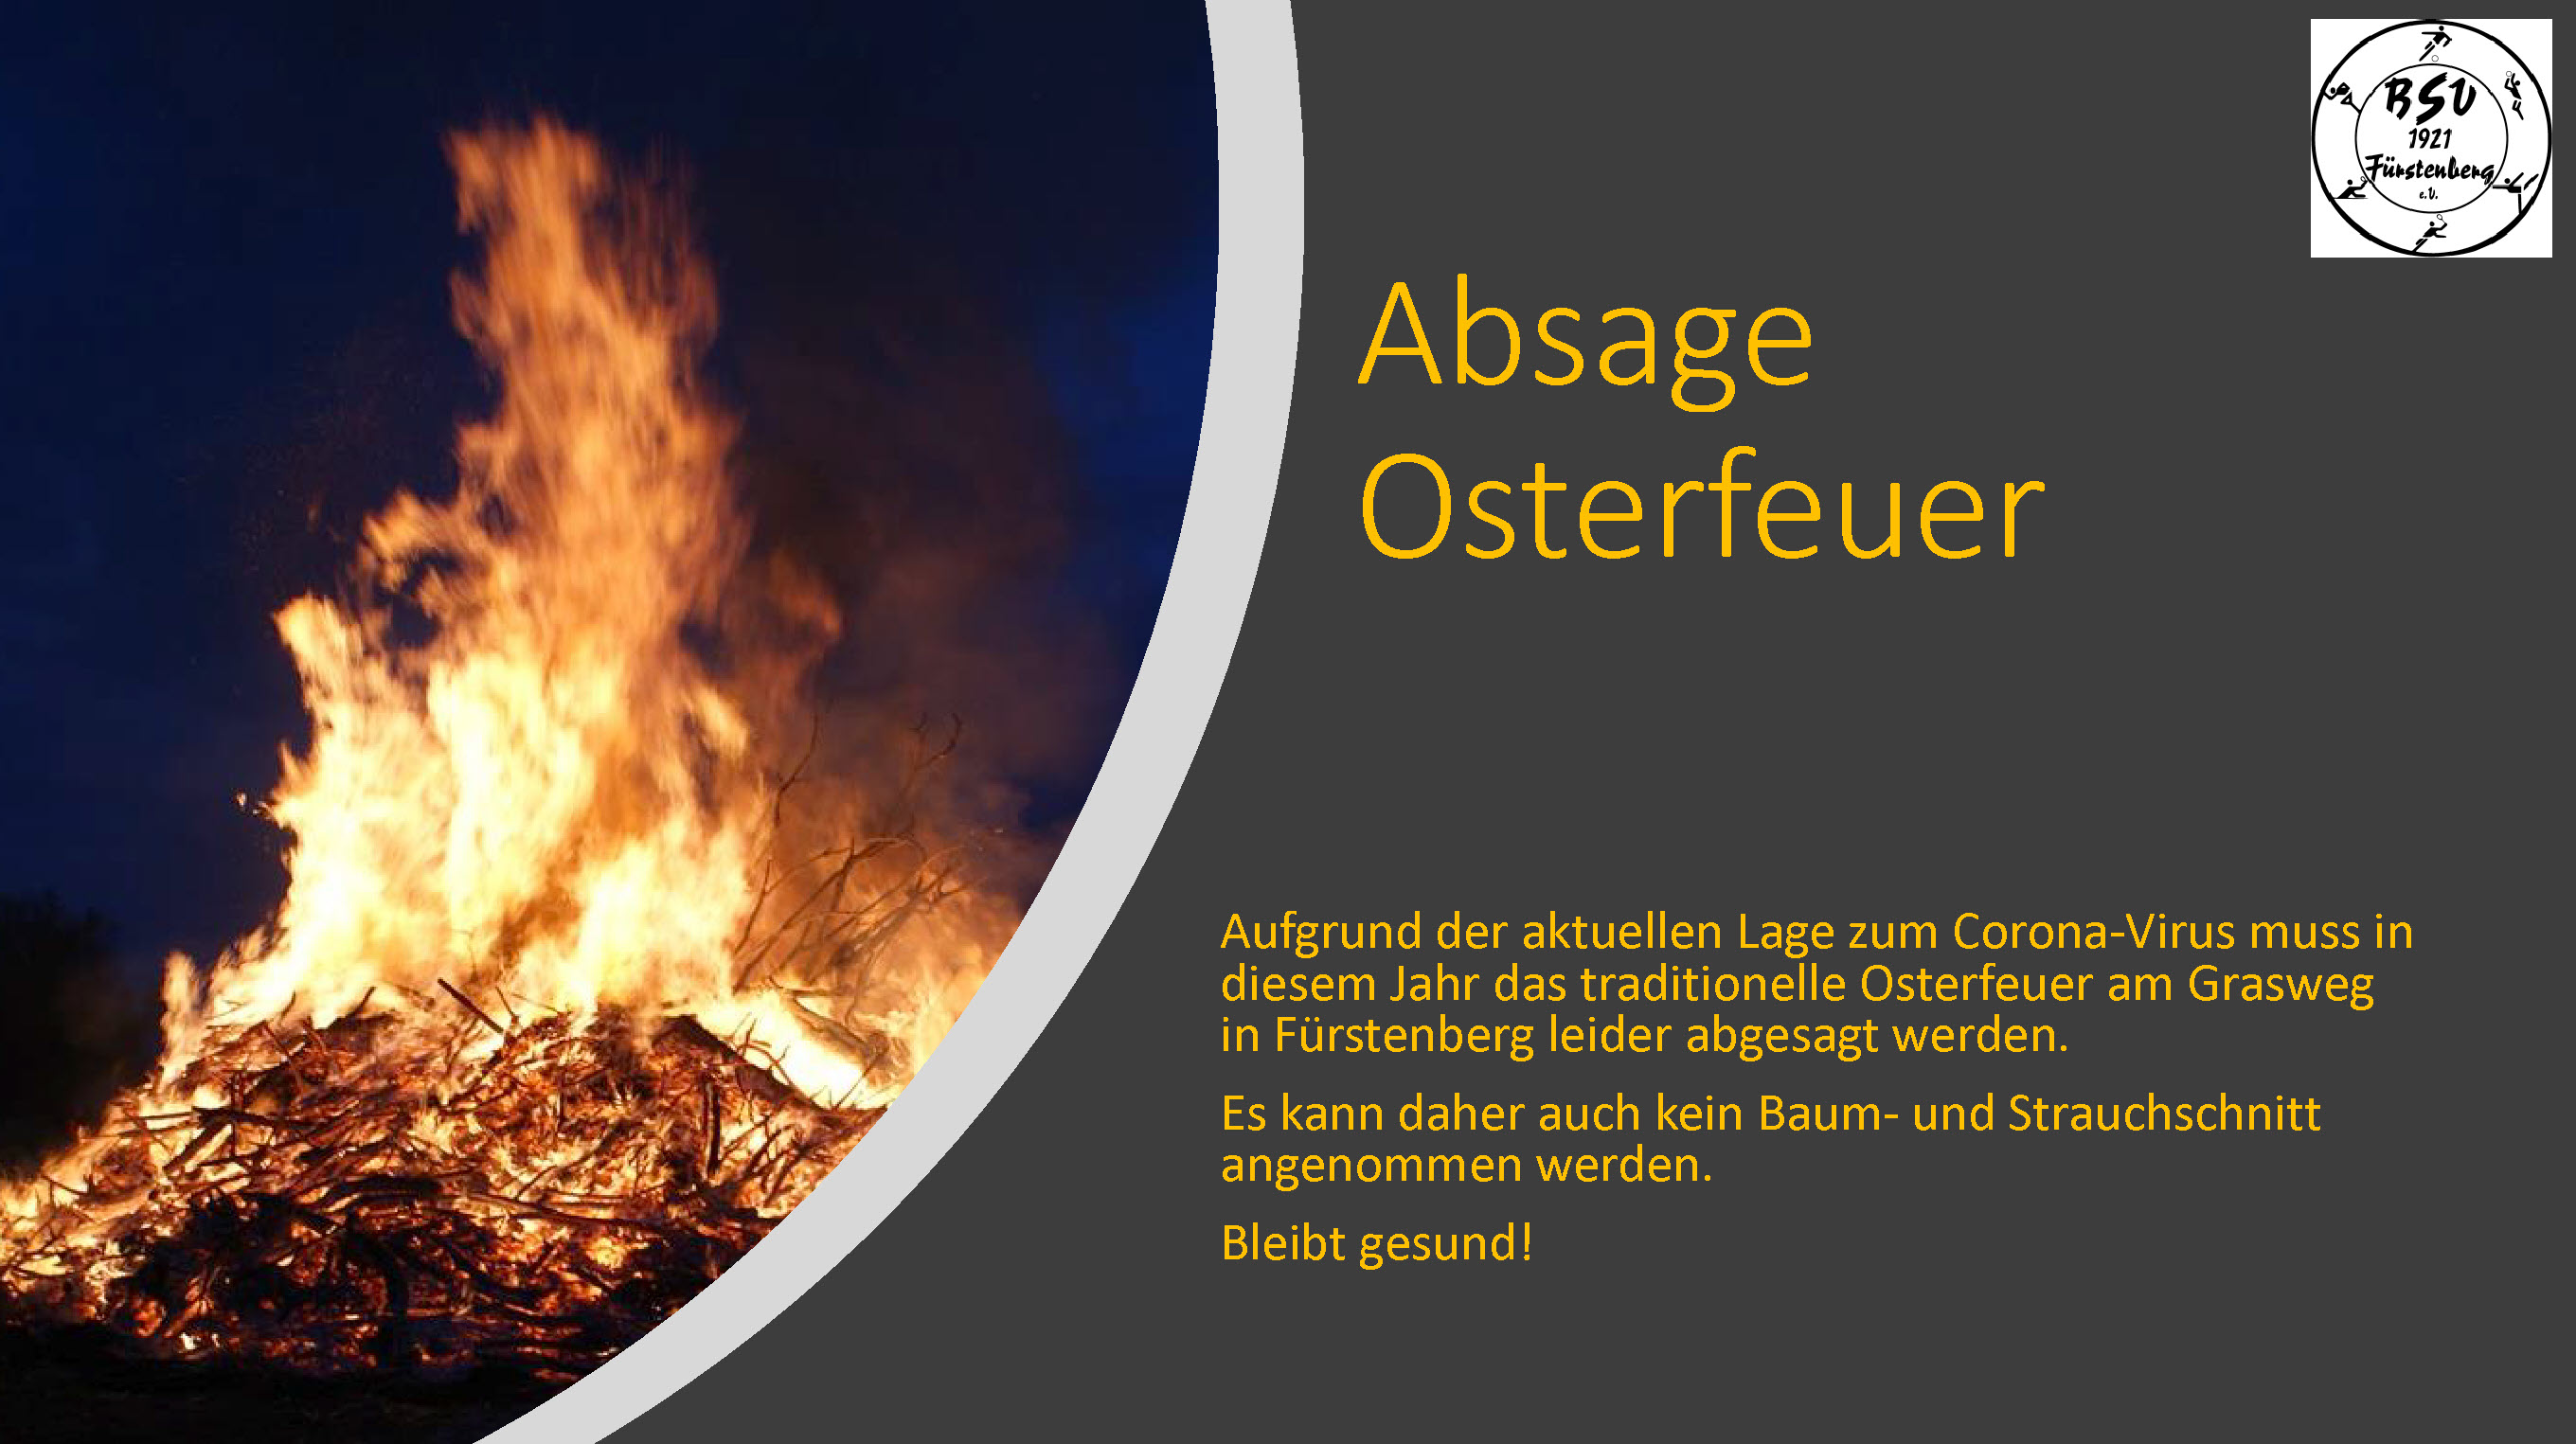 AbsageOsterfeuer